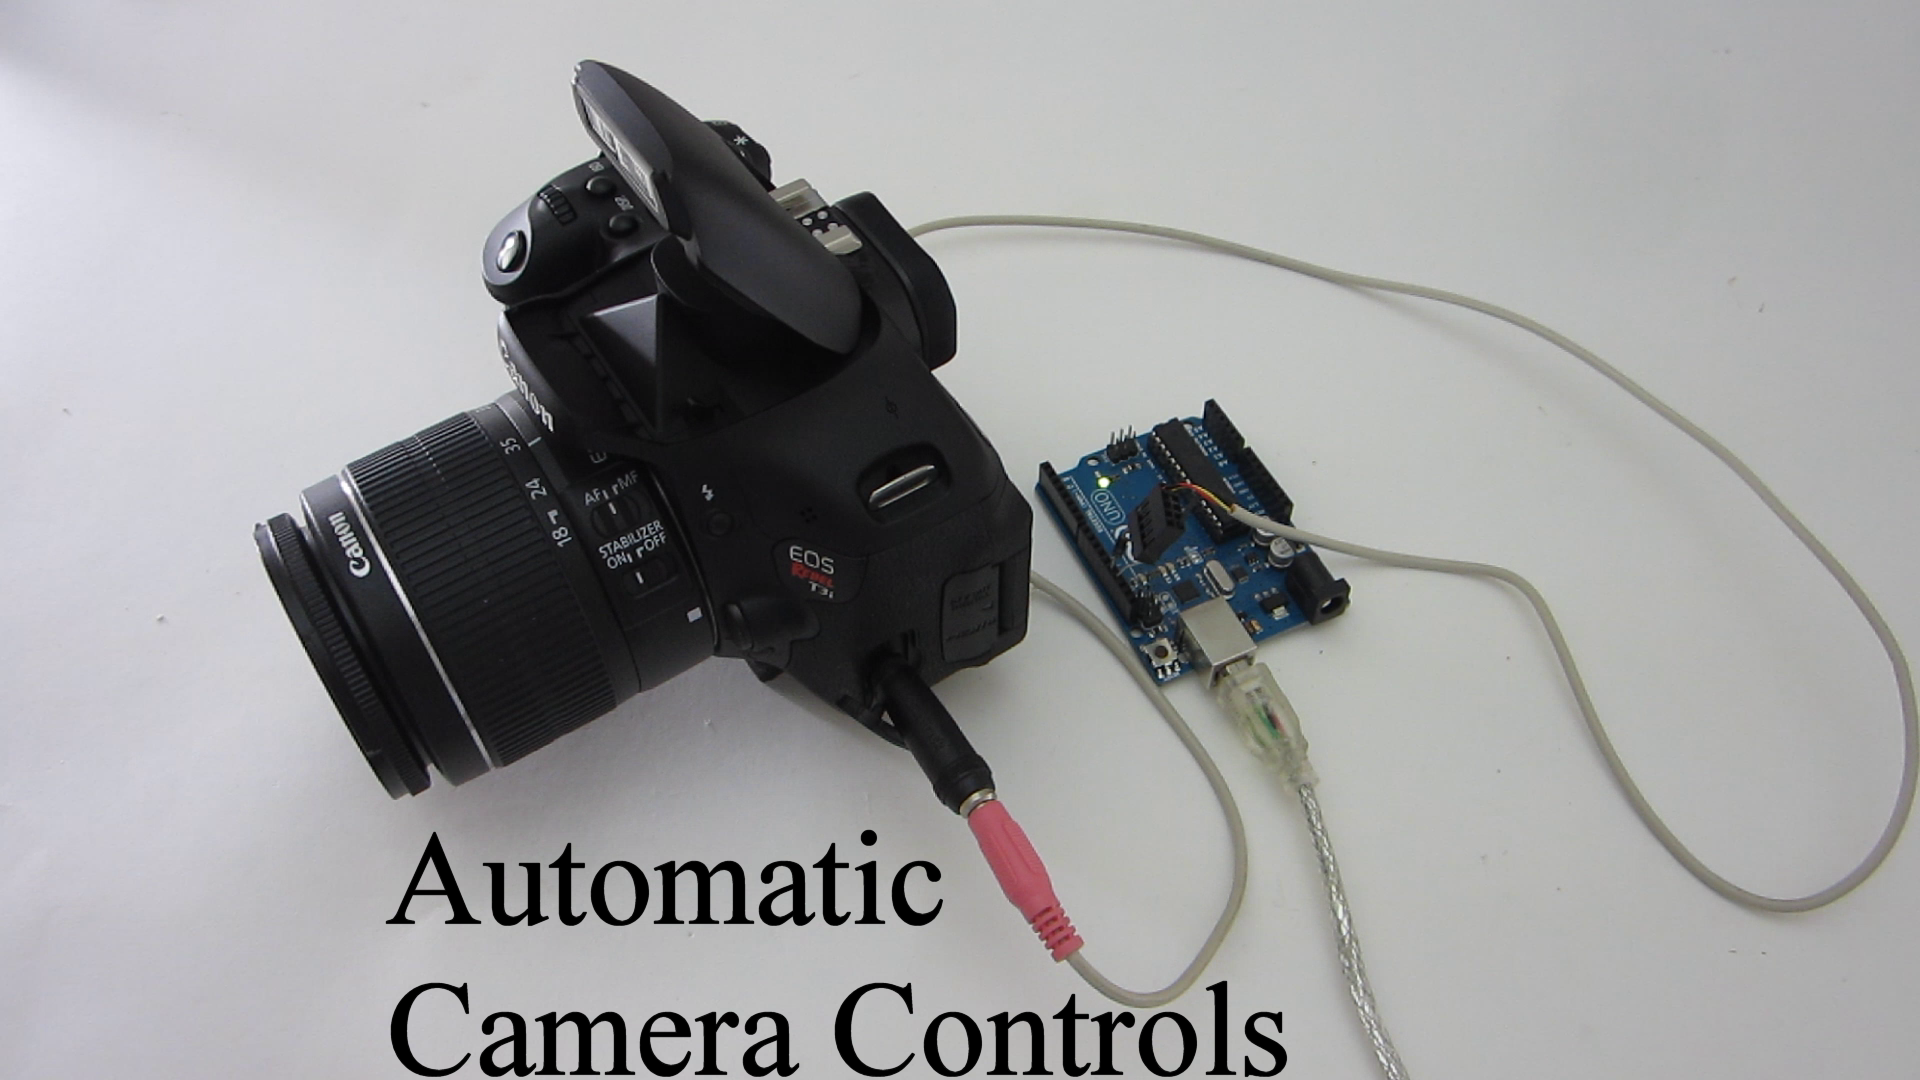 Automatic Camera Shutter Switch: 7 Steps (with Pictures)